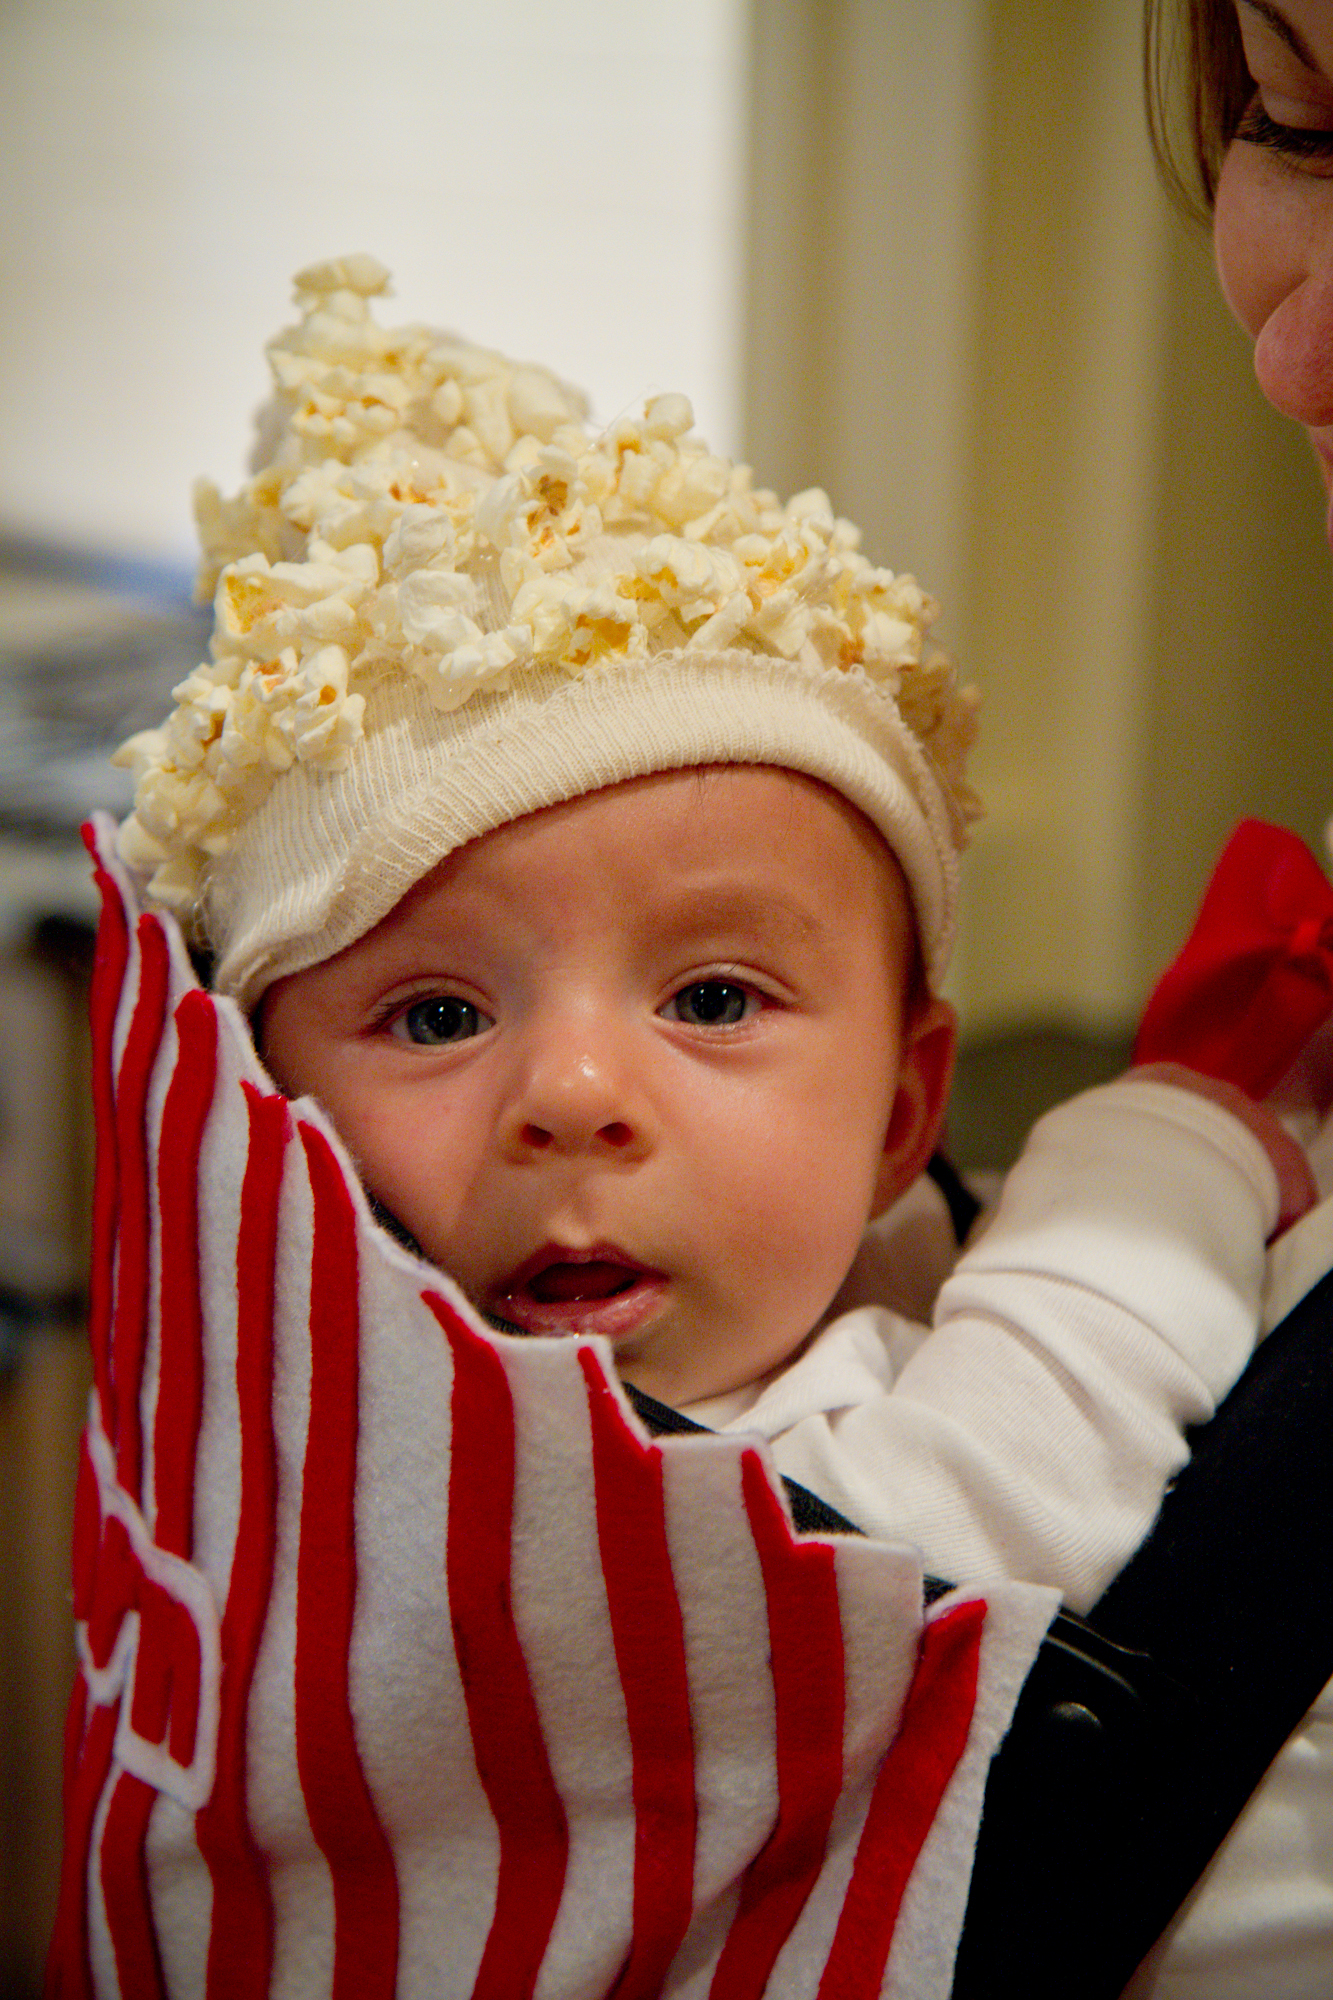 baby in popcorn box costume